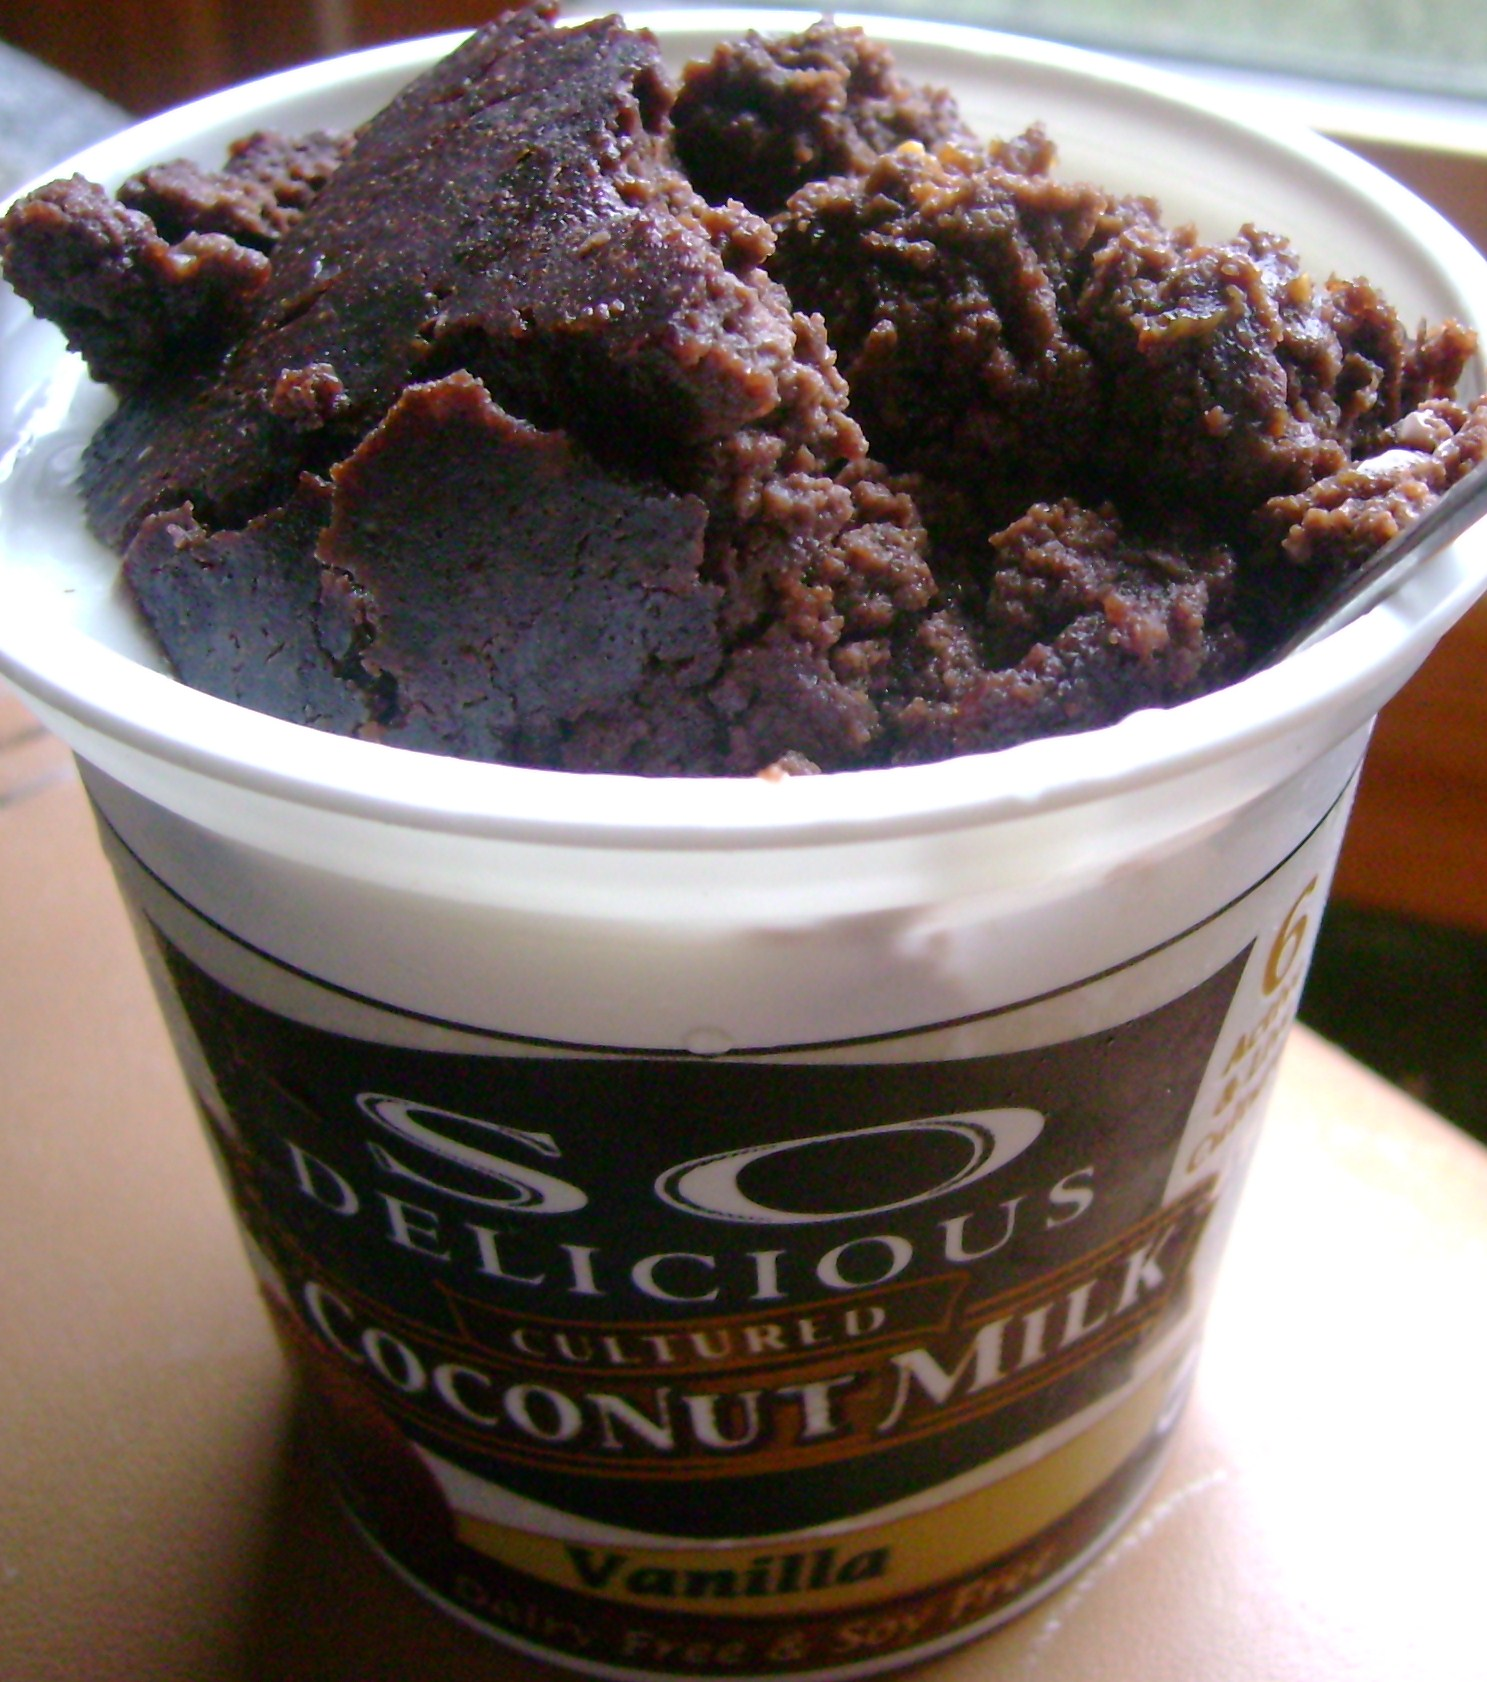 Coconut Milk Vanilla Yogurt With Gluten-Free Chocolate Peanut Butter Brownie